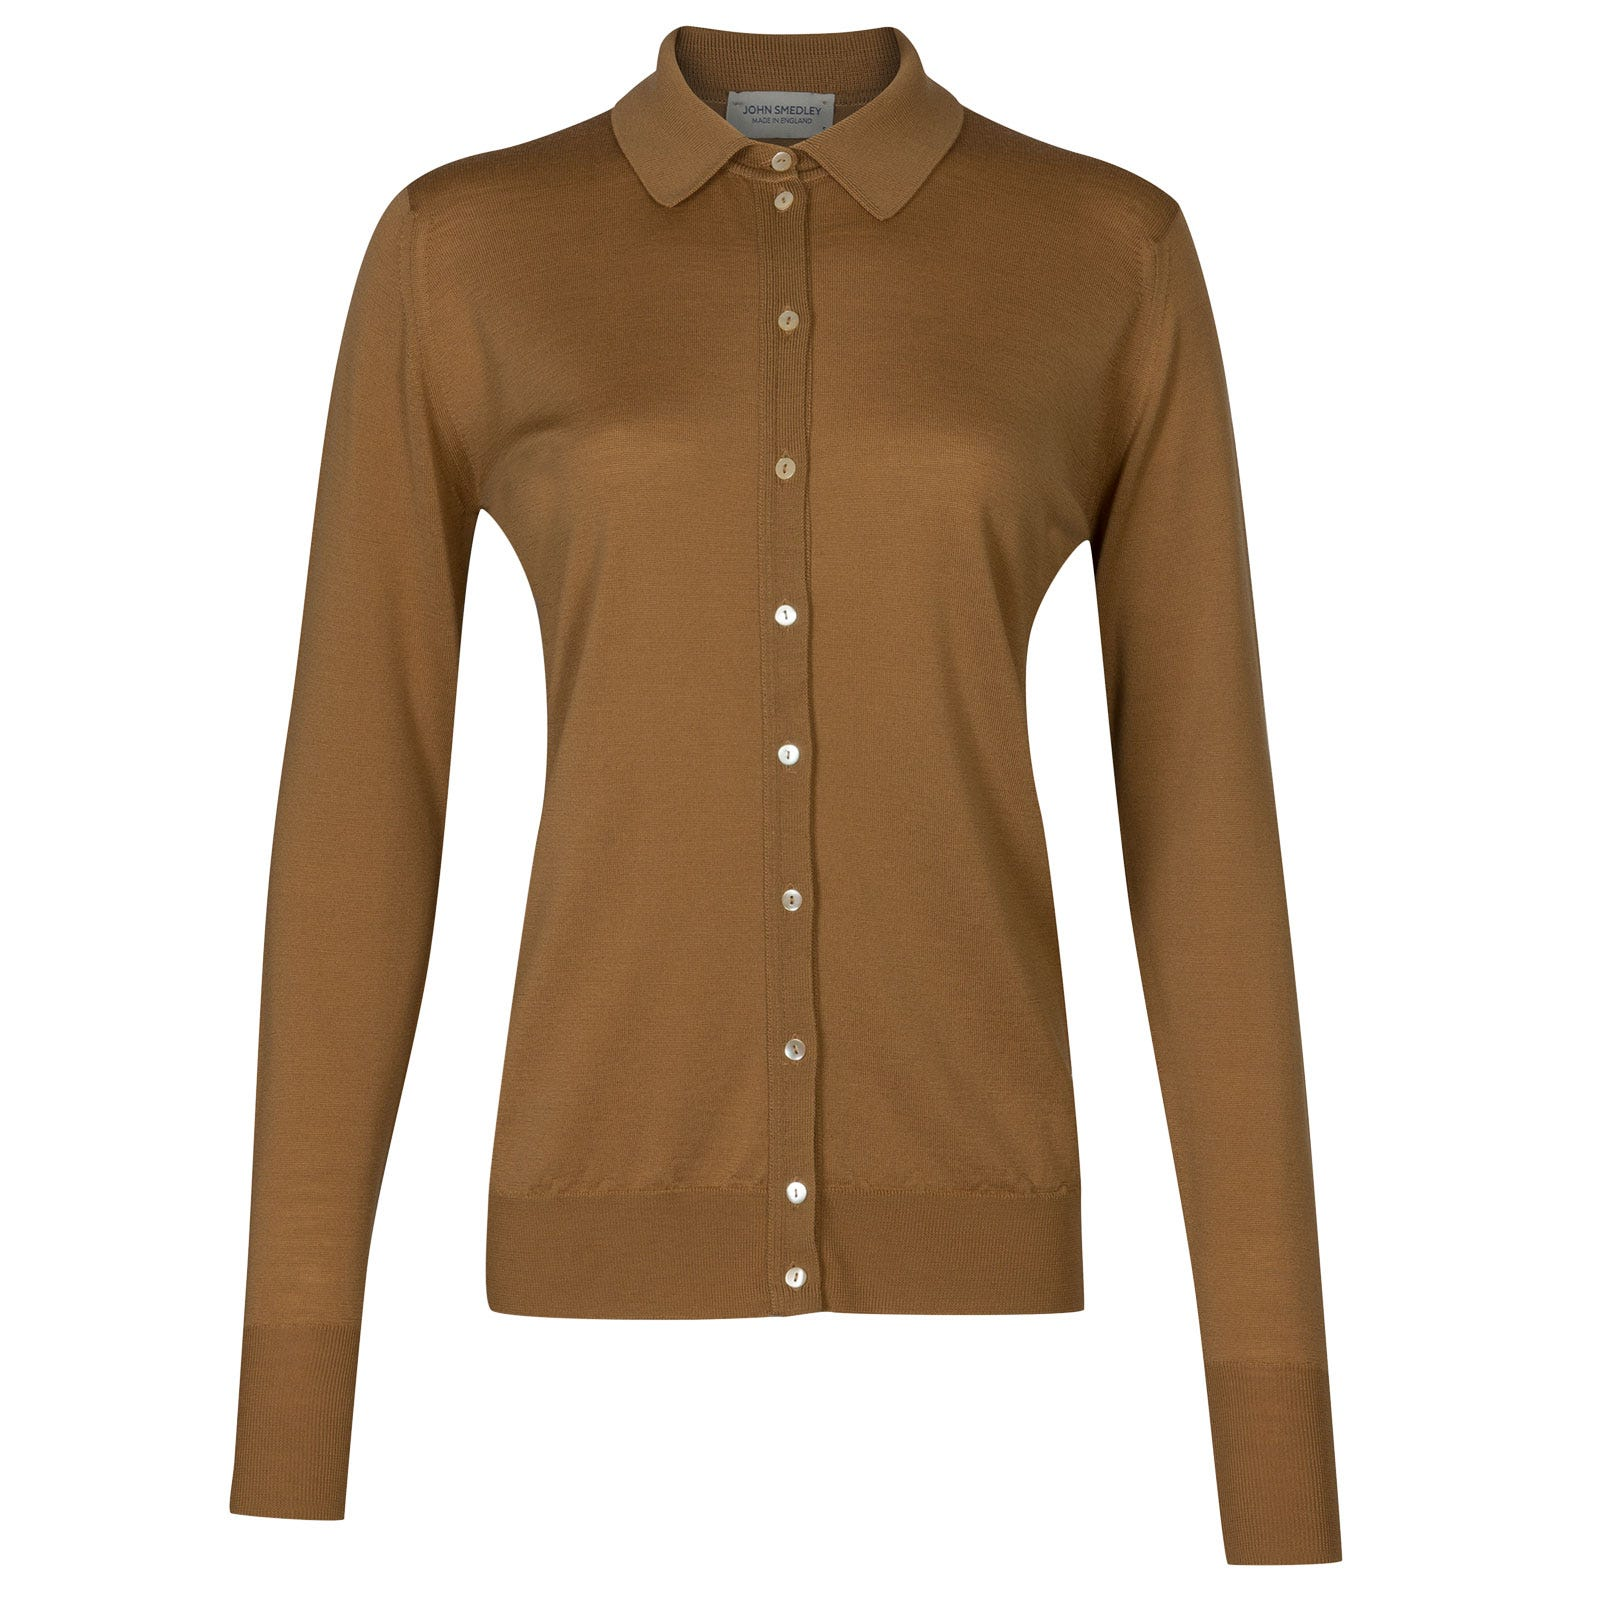 John Smedley bartley Merino Wool Shirt in Camel-M